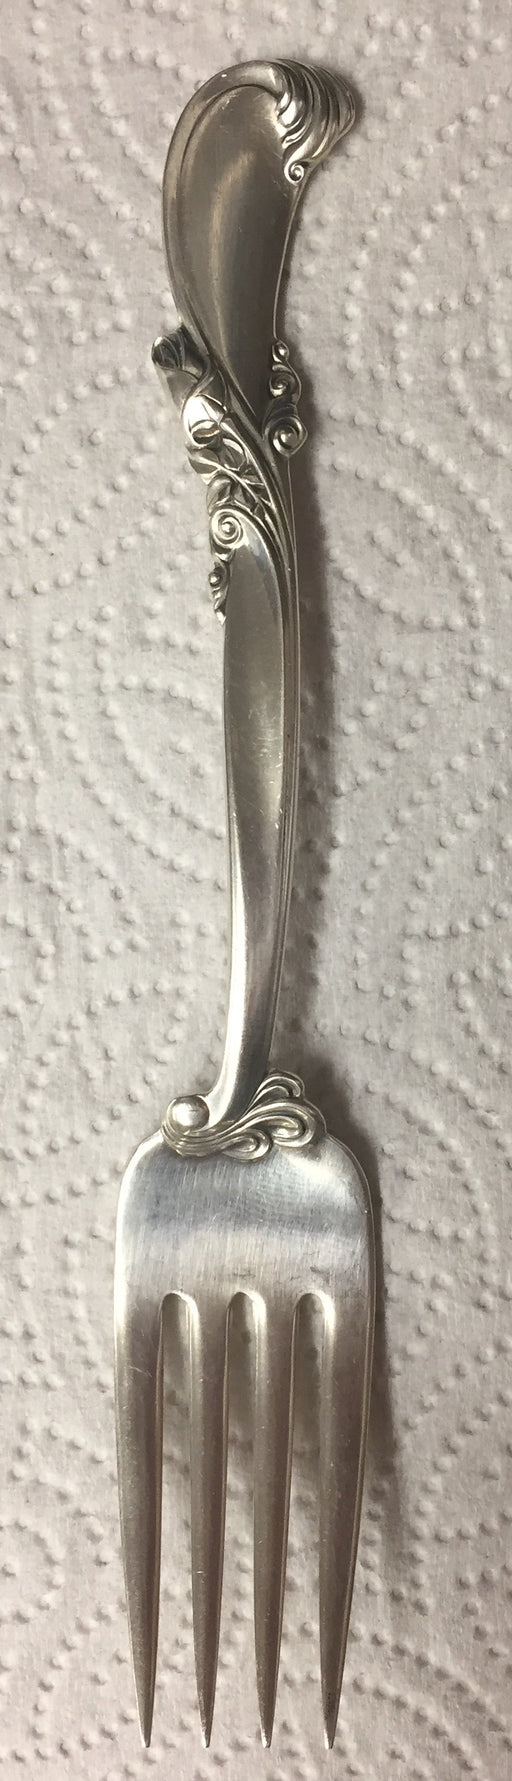 Waltz of Spring Sterling Silver Salad Fork by Wallace 6-3/8 inch   - TvMovieCards.com